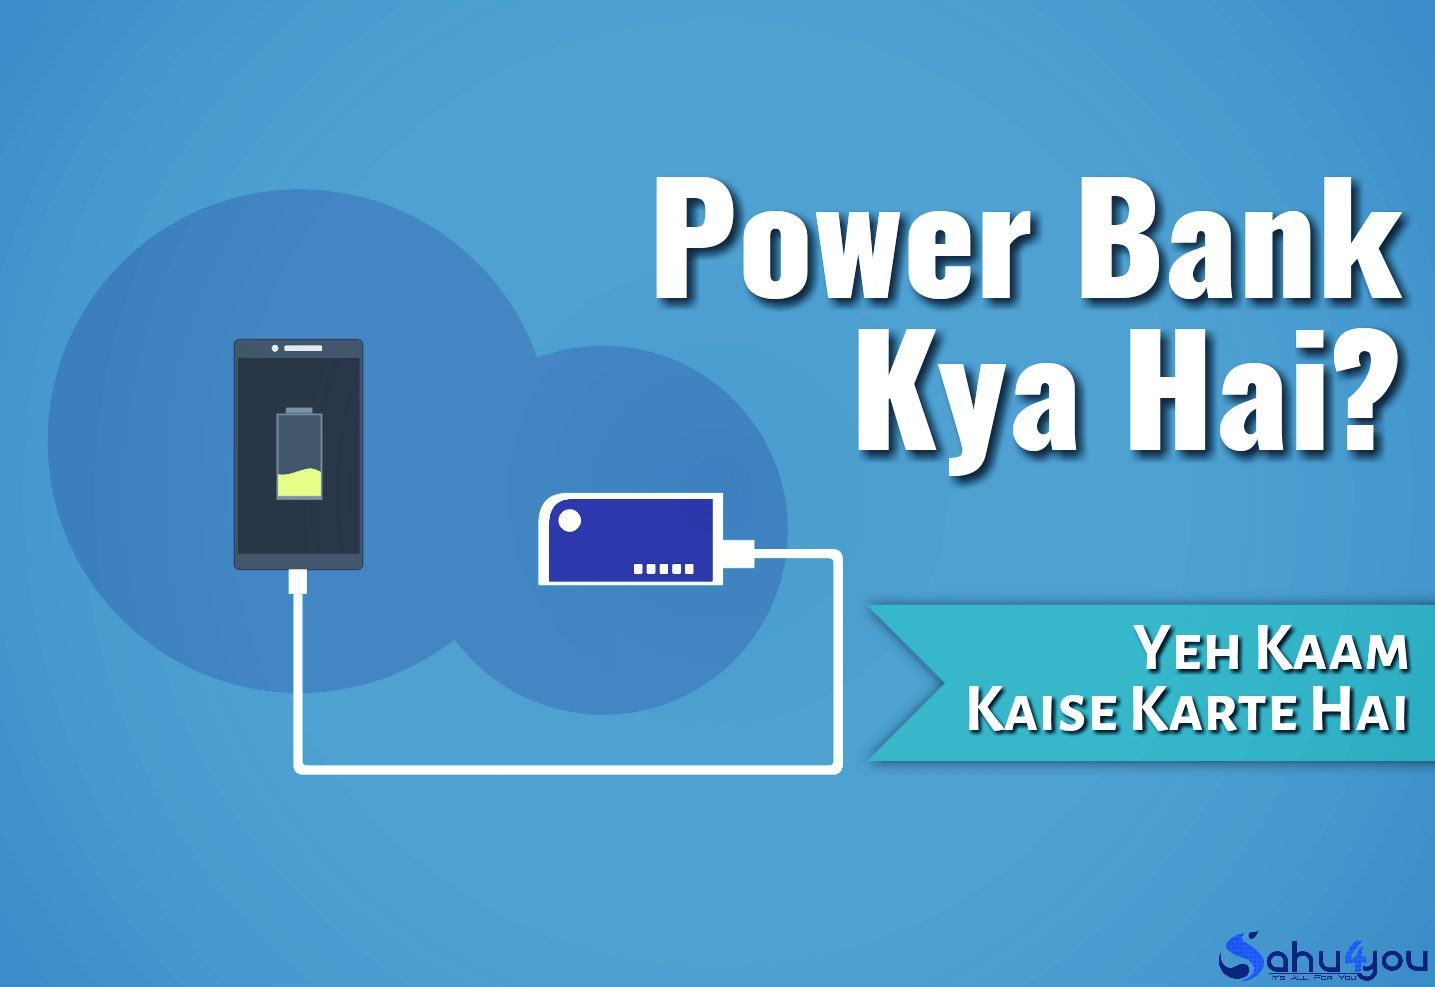 PowerBank Kya Hai, Power Bank Kaise Kaam Karta Hai, PowerBank Kya Hota Hai, What Is Power Bank In Hindi